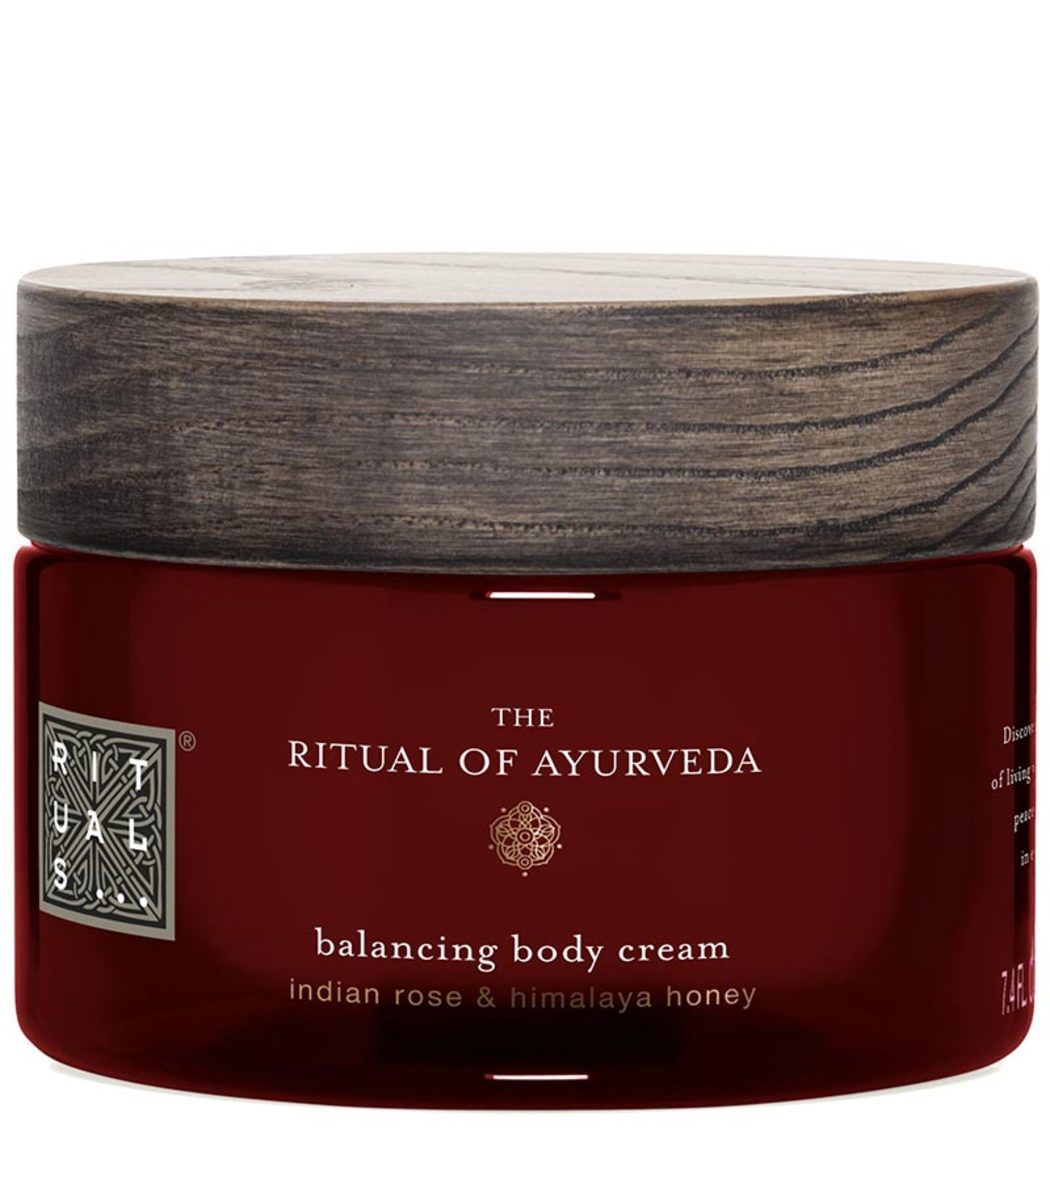 RITUALS The Ritual of Ayurveda Body Cream